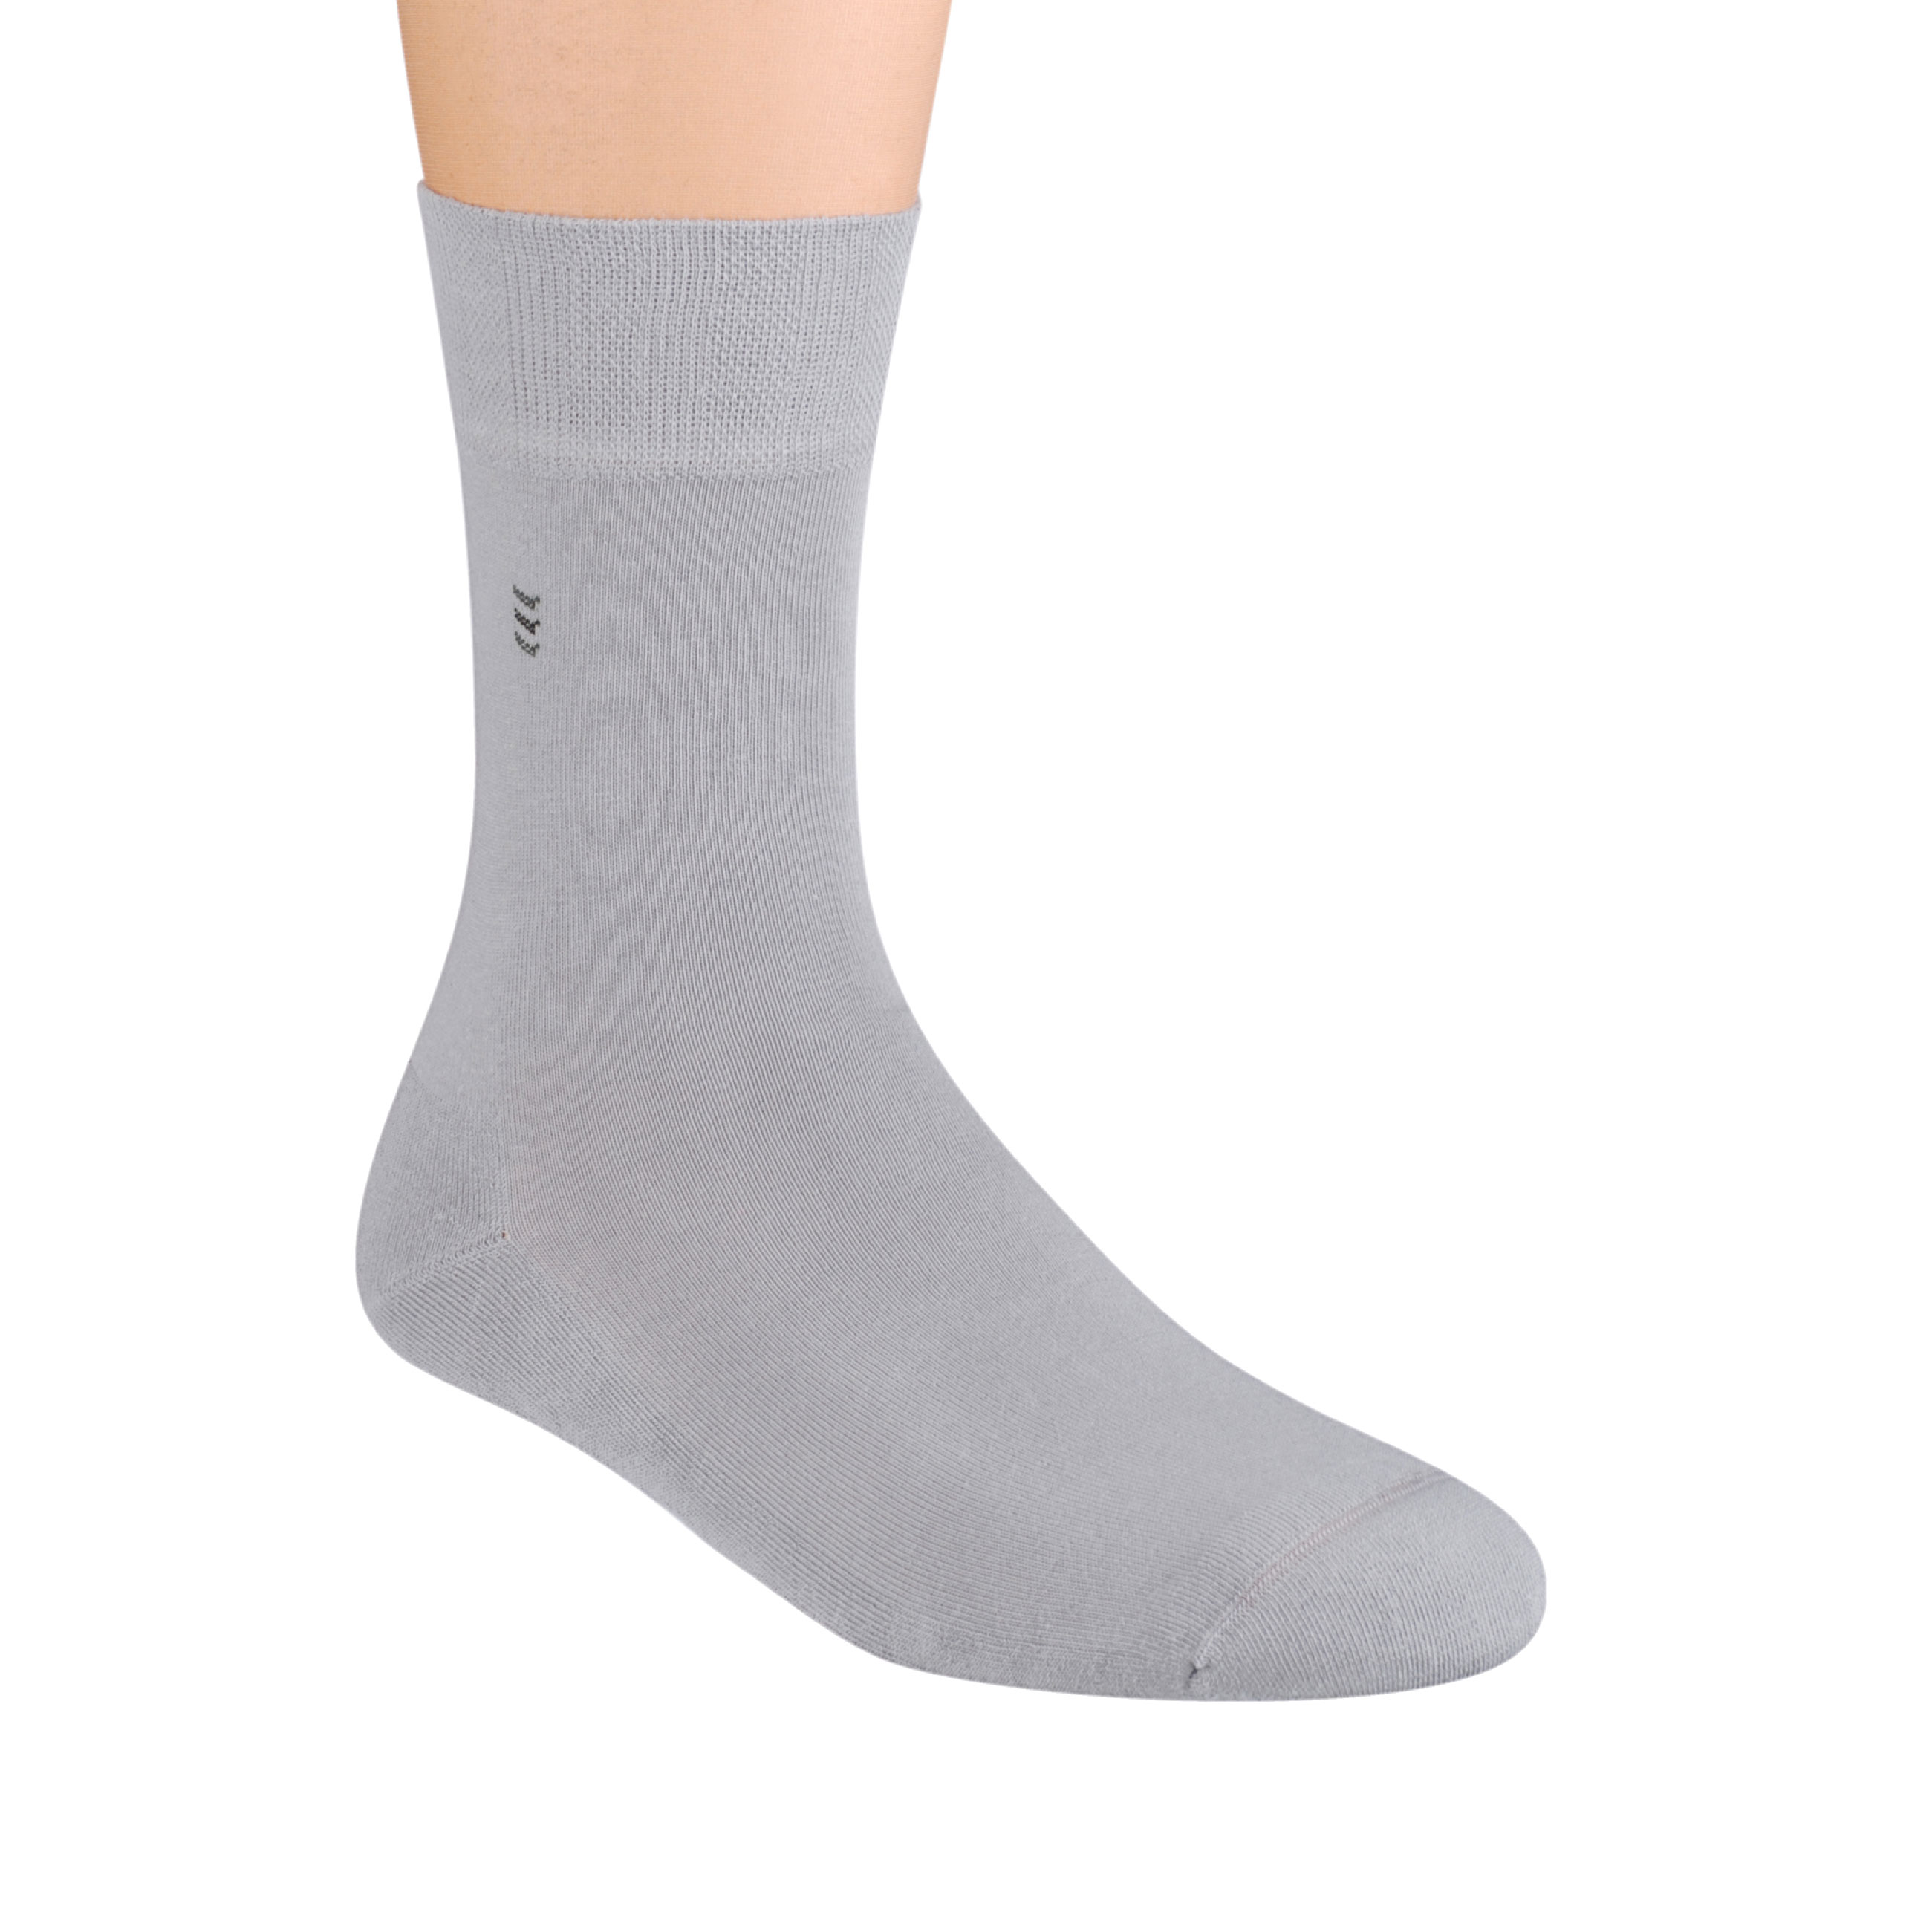 MEN'S SOCKS WITH SOLE FOR SHOES Frota, GRI S003